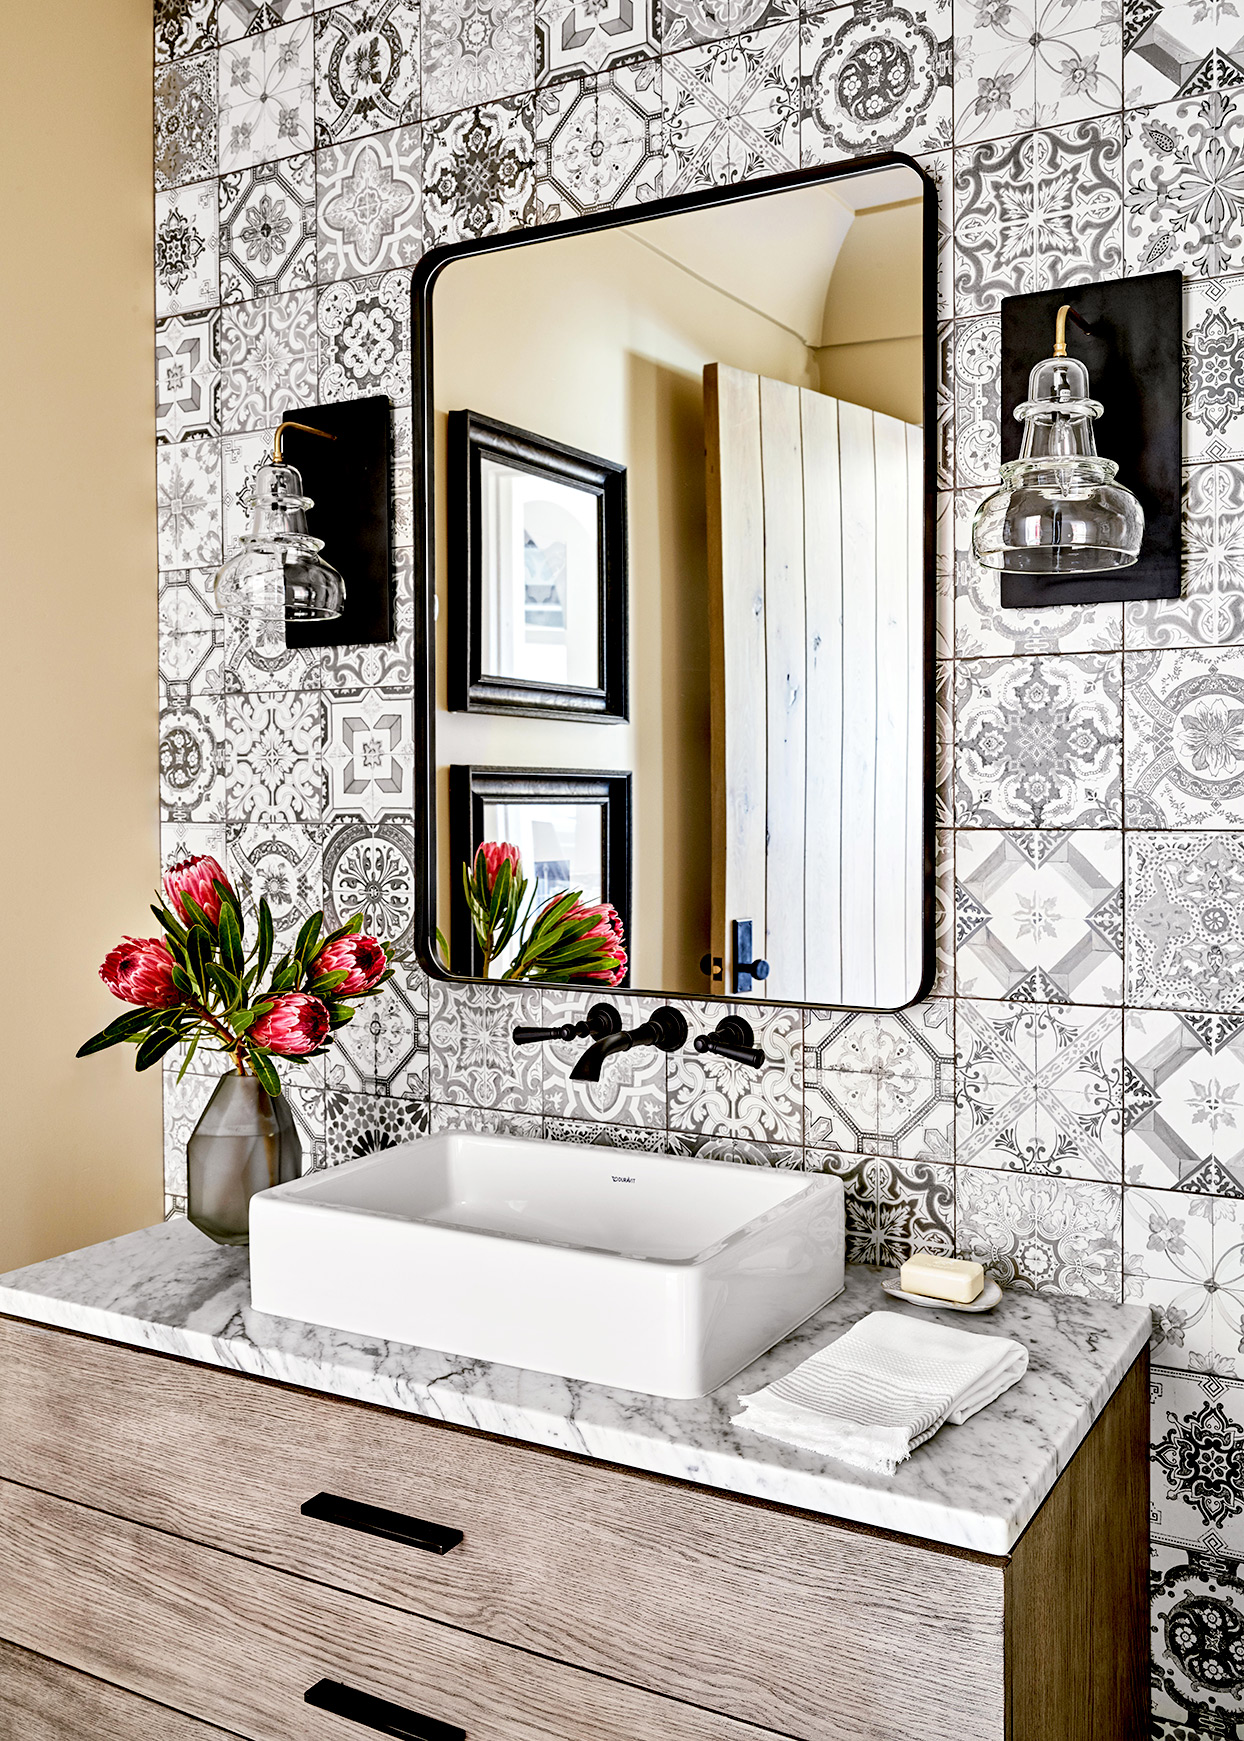 Bathroom with black and white tile and marble sink